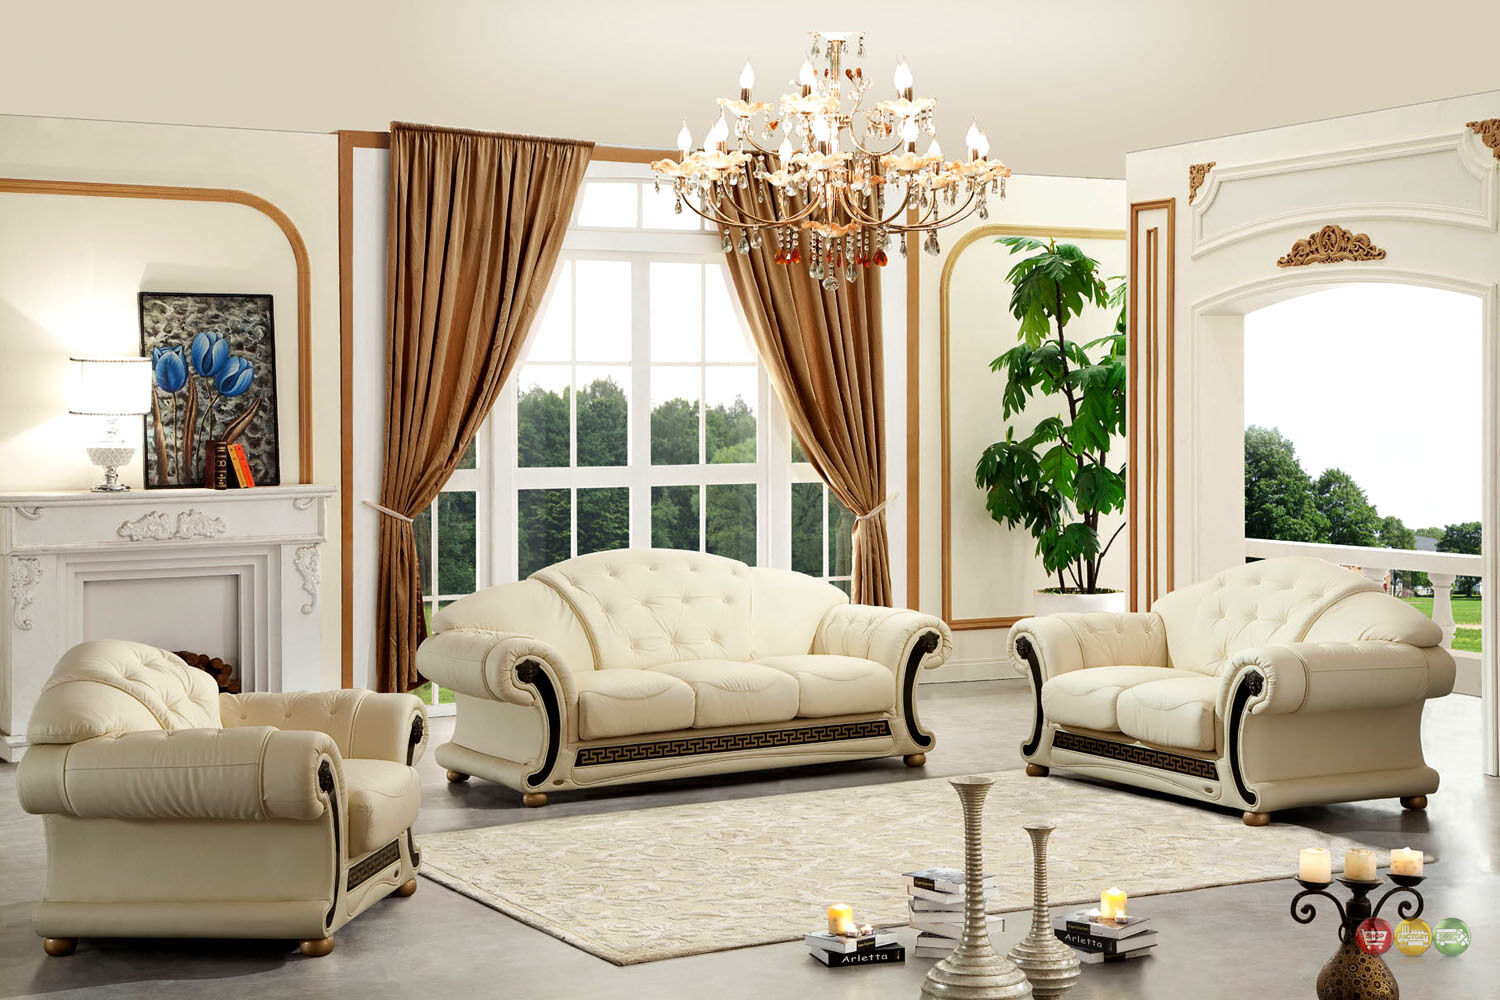 Details About Living Room Sofa Set Ivory Cream 100 Genuine Italian Top Grain Leather Beige